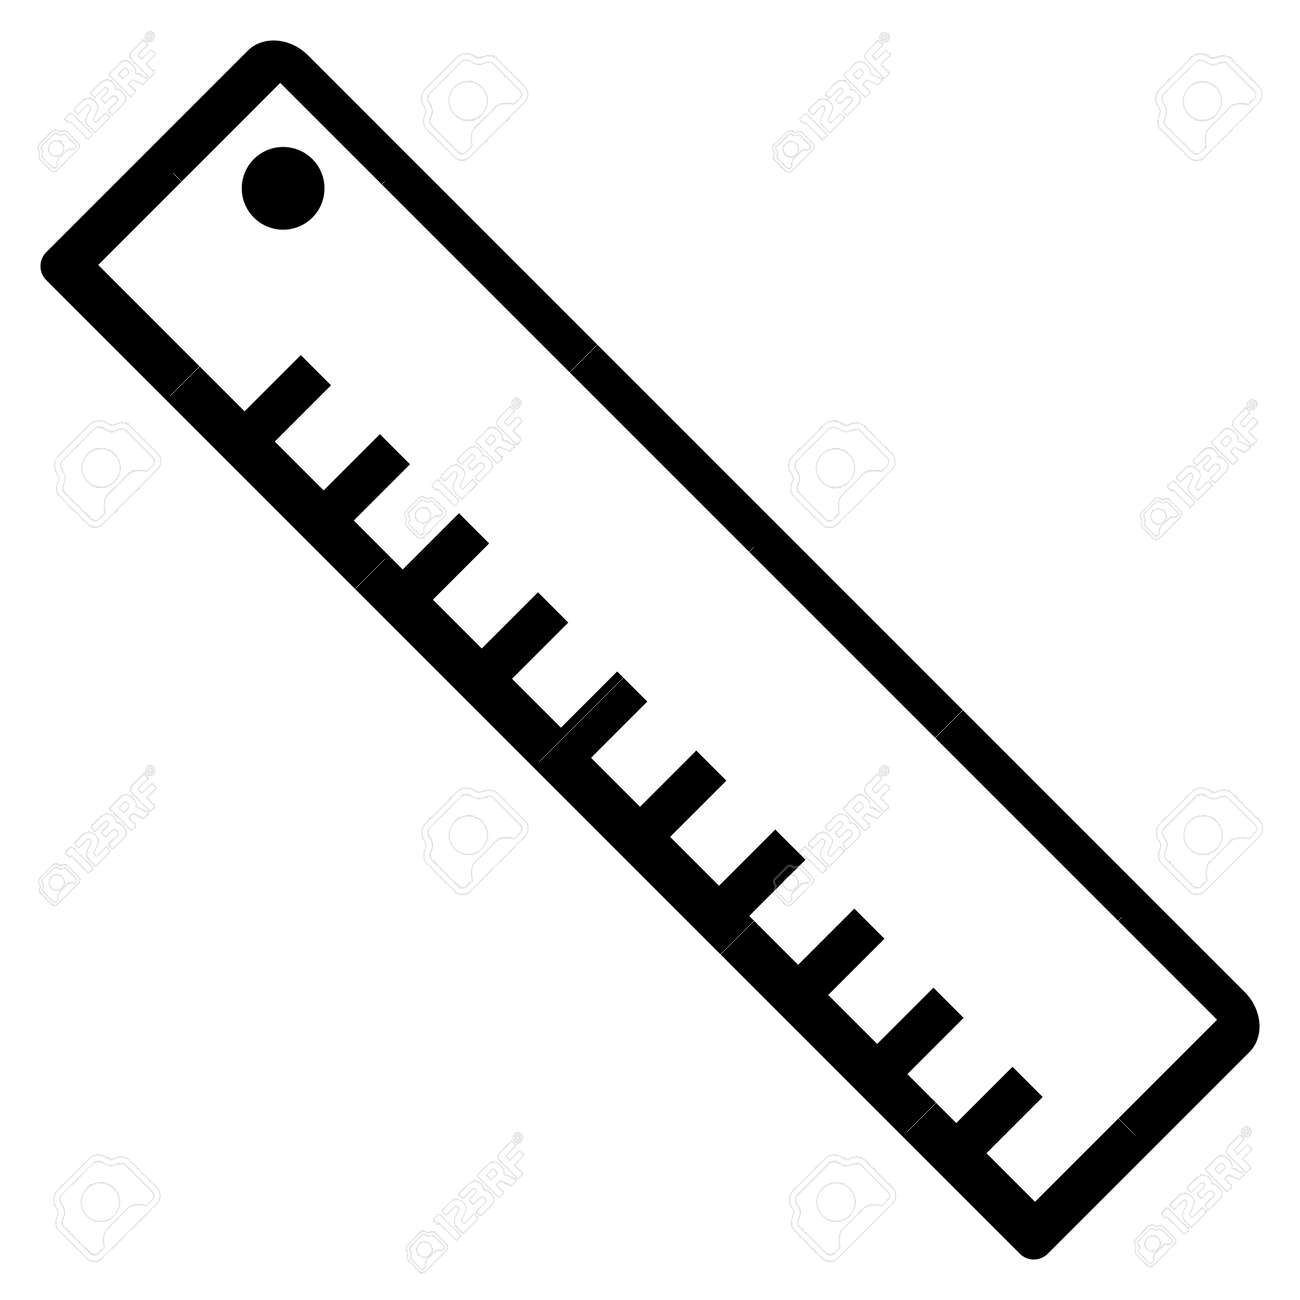 length ruler vector icon royalty free cliparts vectors and stock rh 123rf com ruler vector free ruler vector art